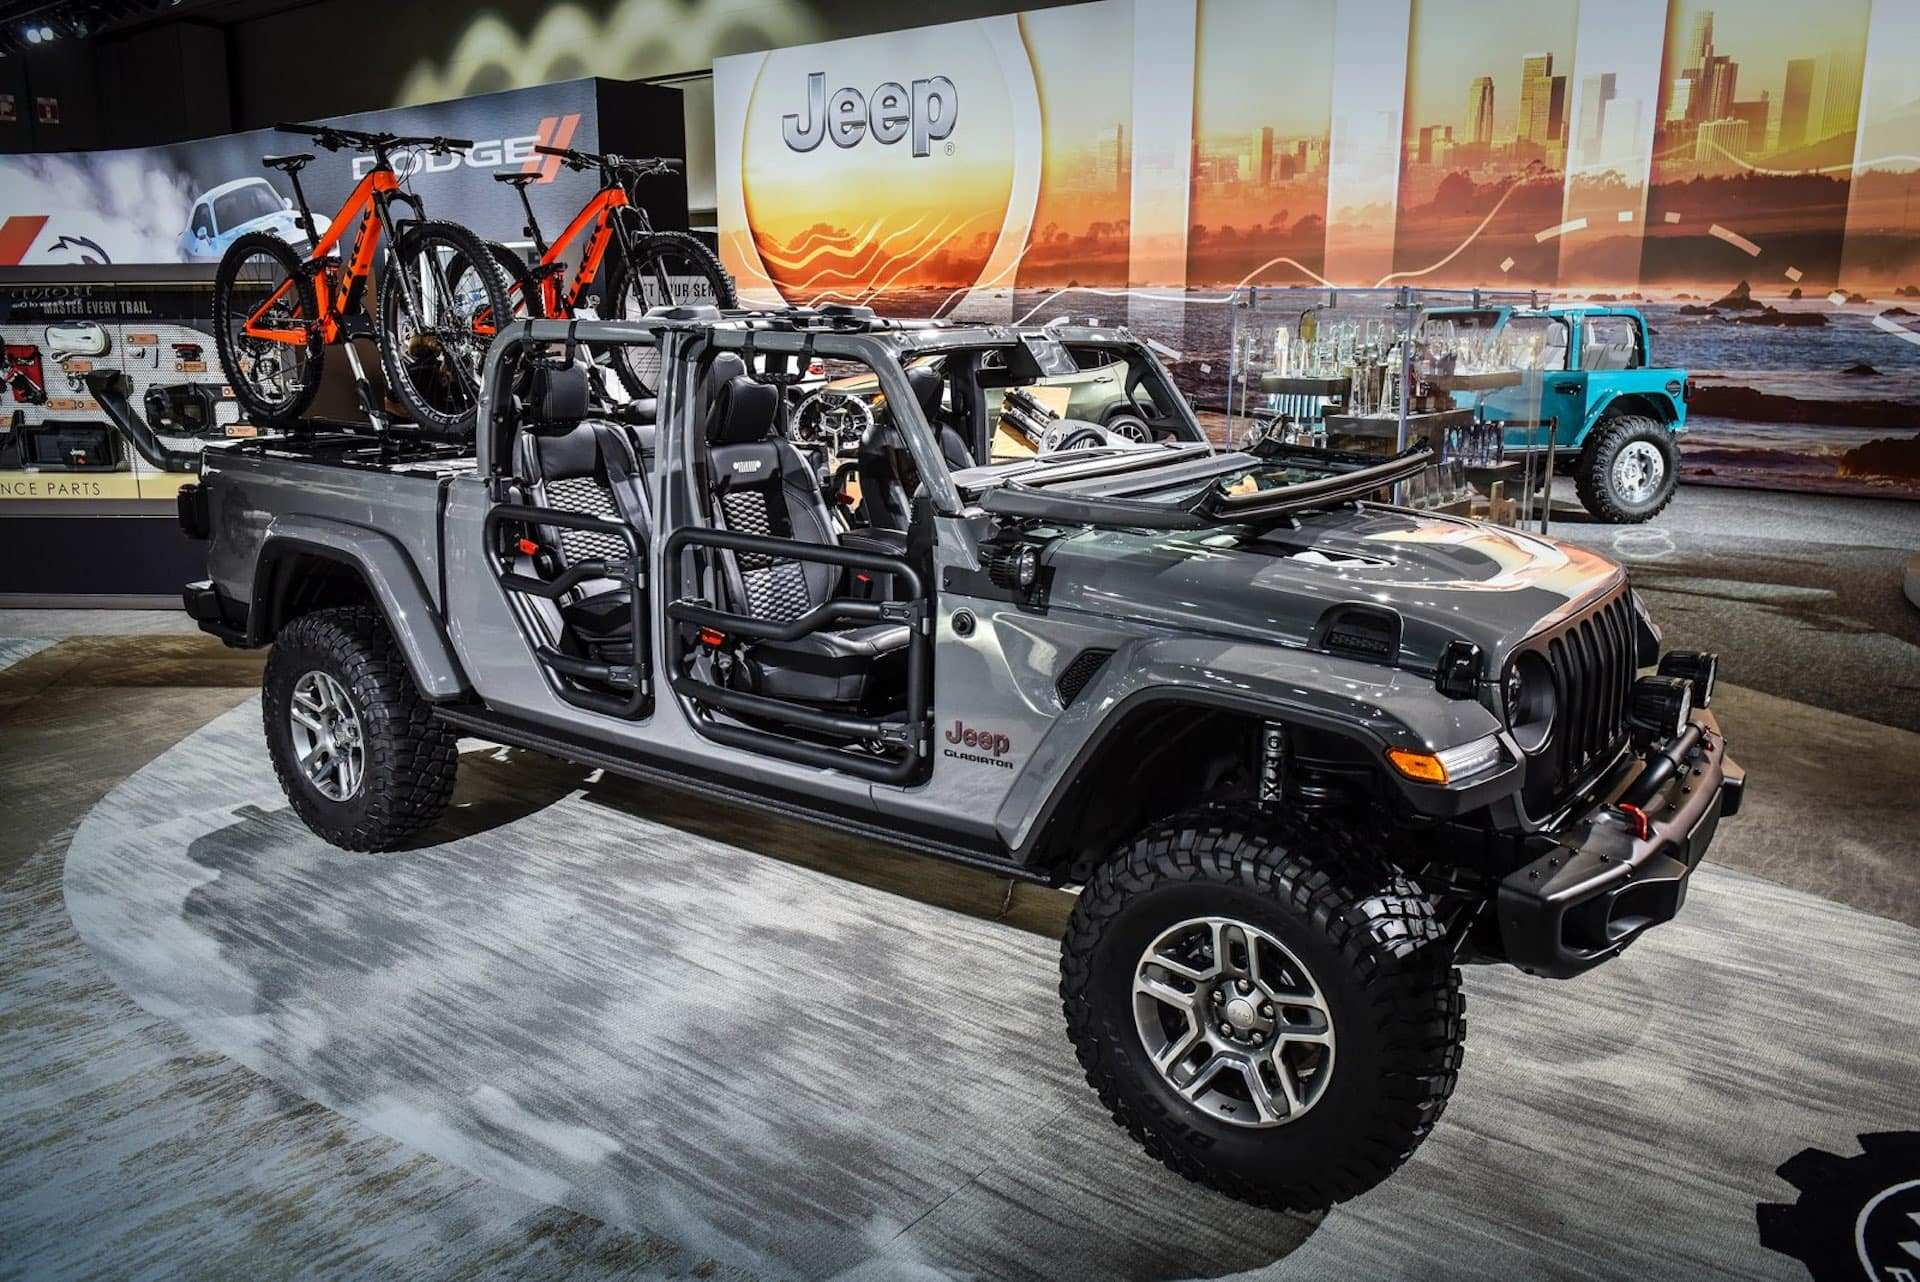 22 Concept of 2020 Jeep Truck New Review with 2020 Jeep Truck